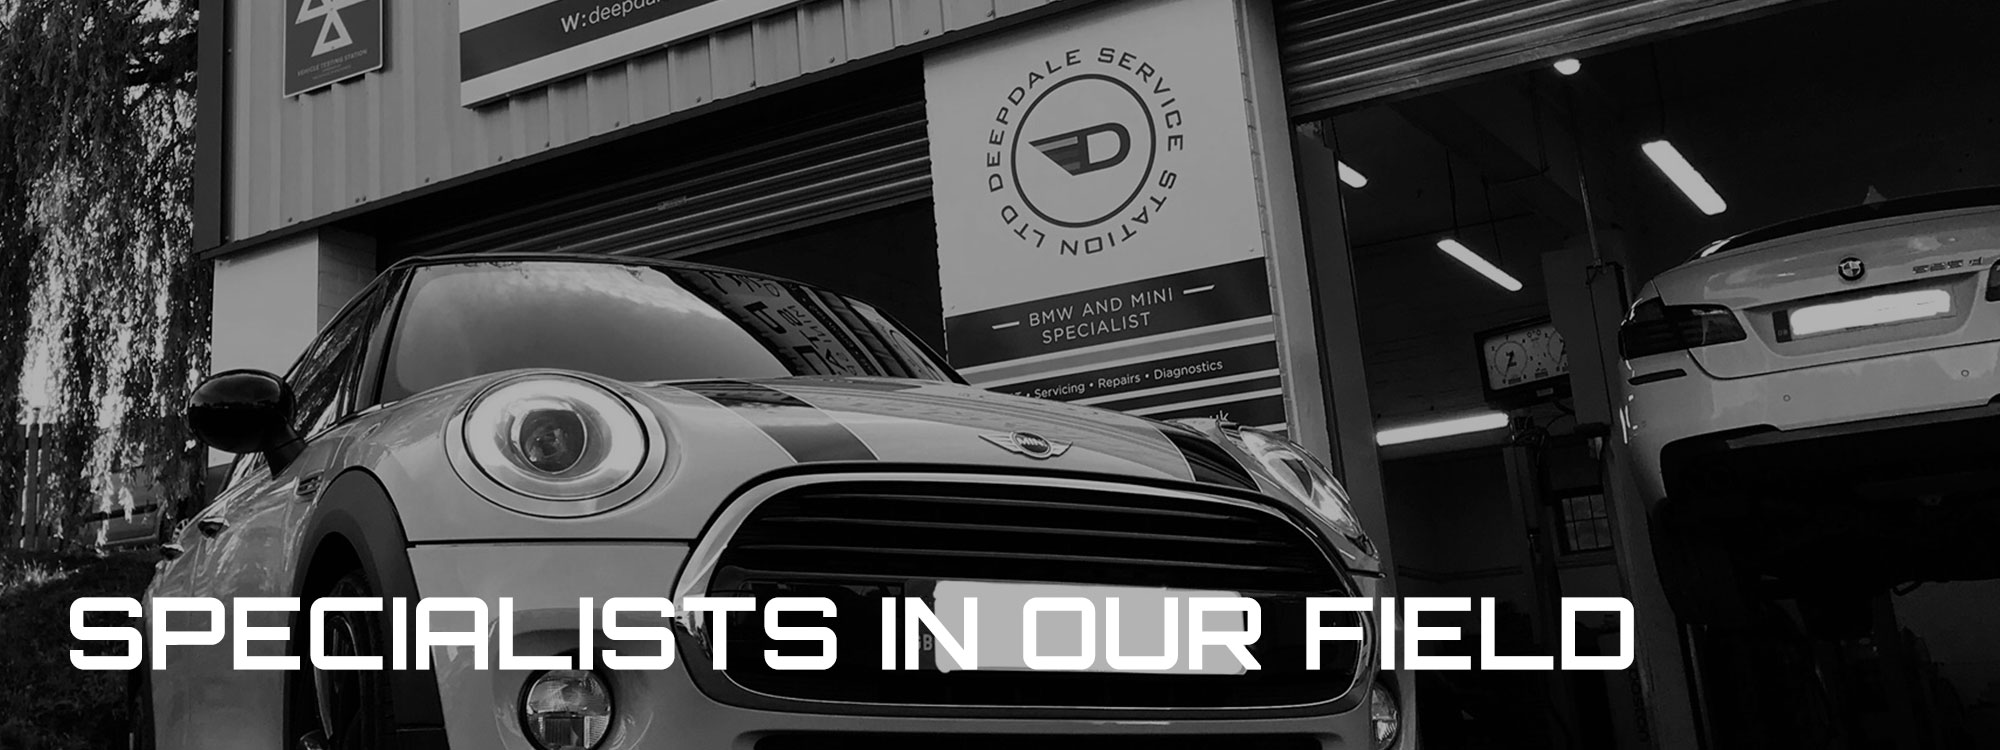 BMW MINI Specialist Servicing, Repairs and MOT Preston, Lancashire